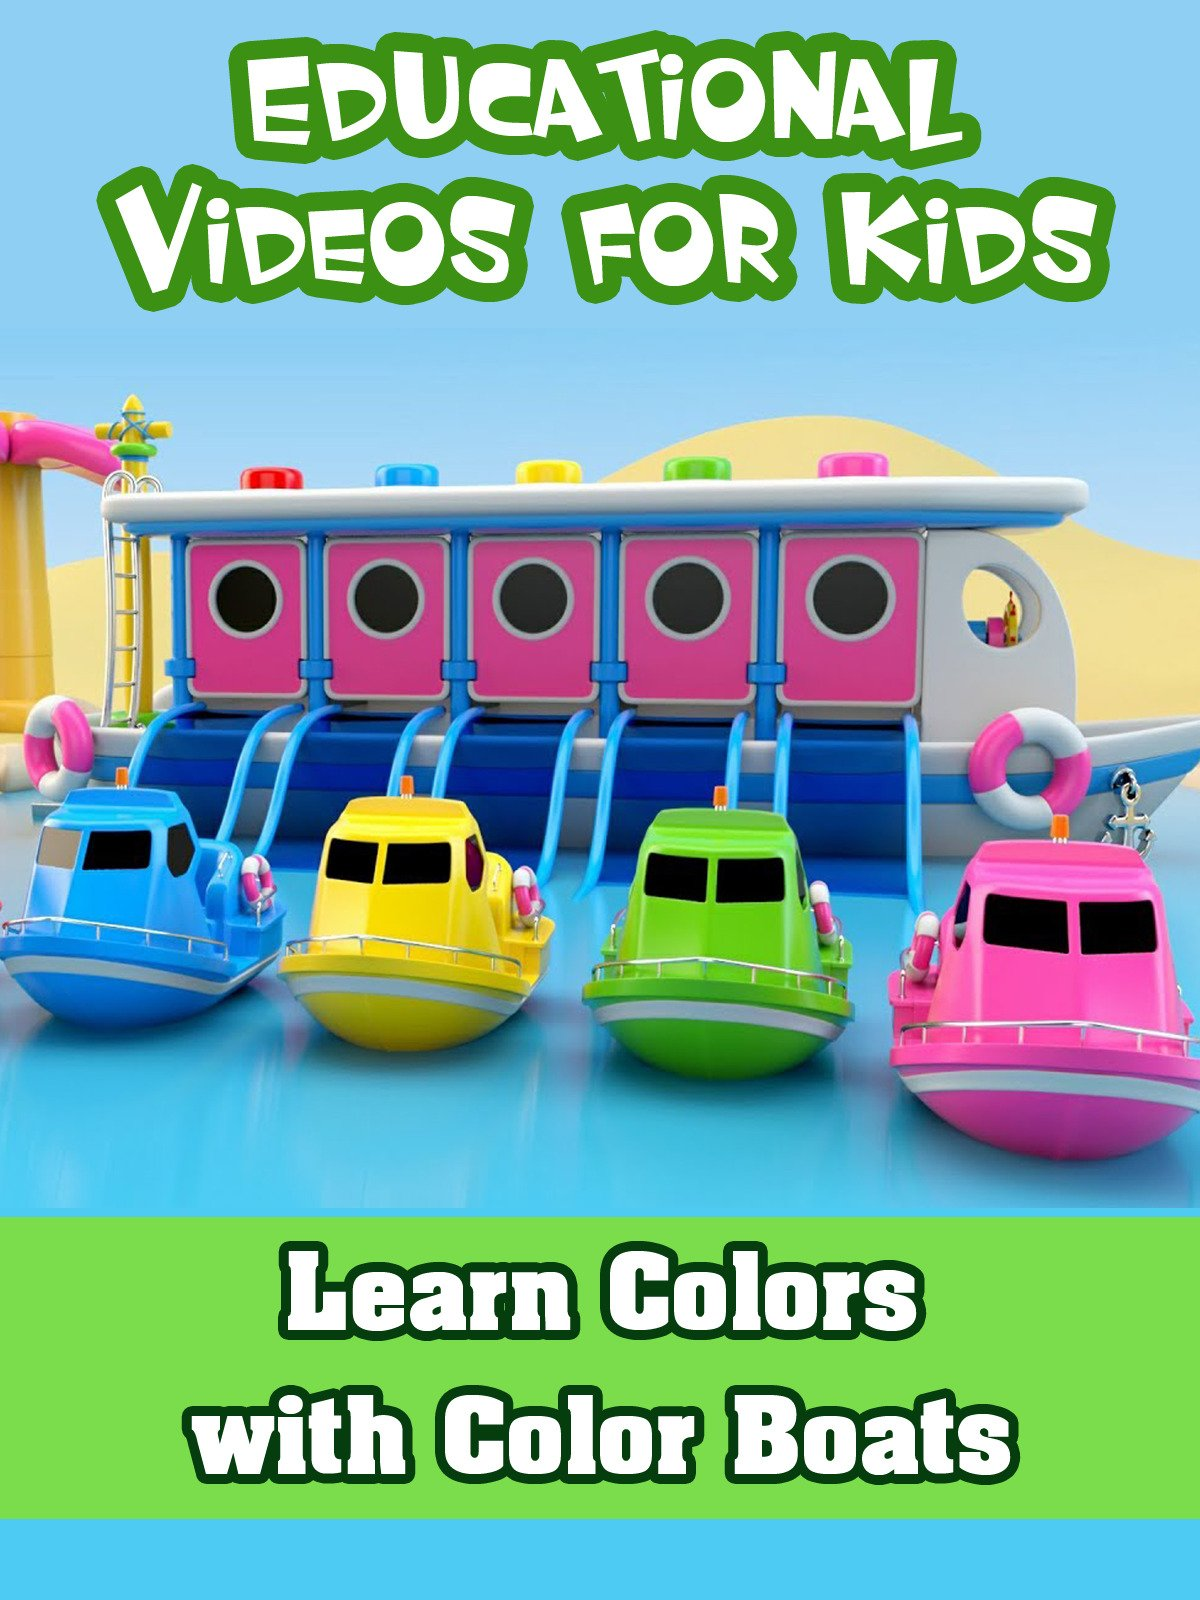 Learn Colors with Color Boats